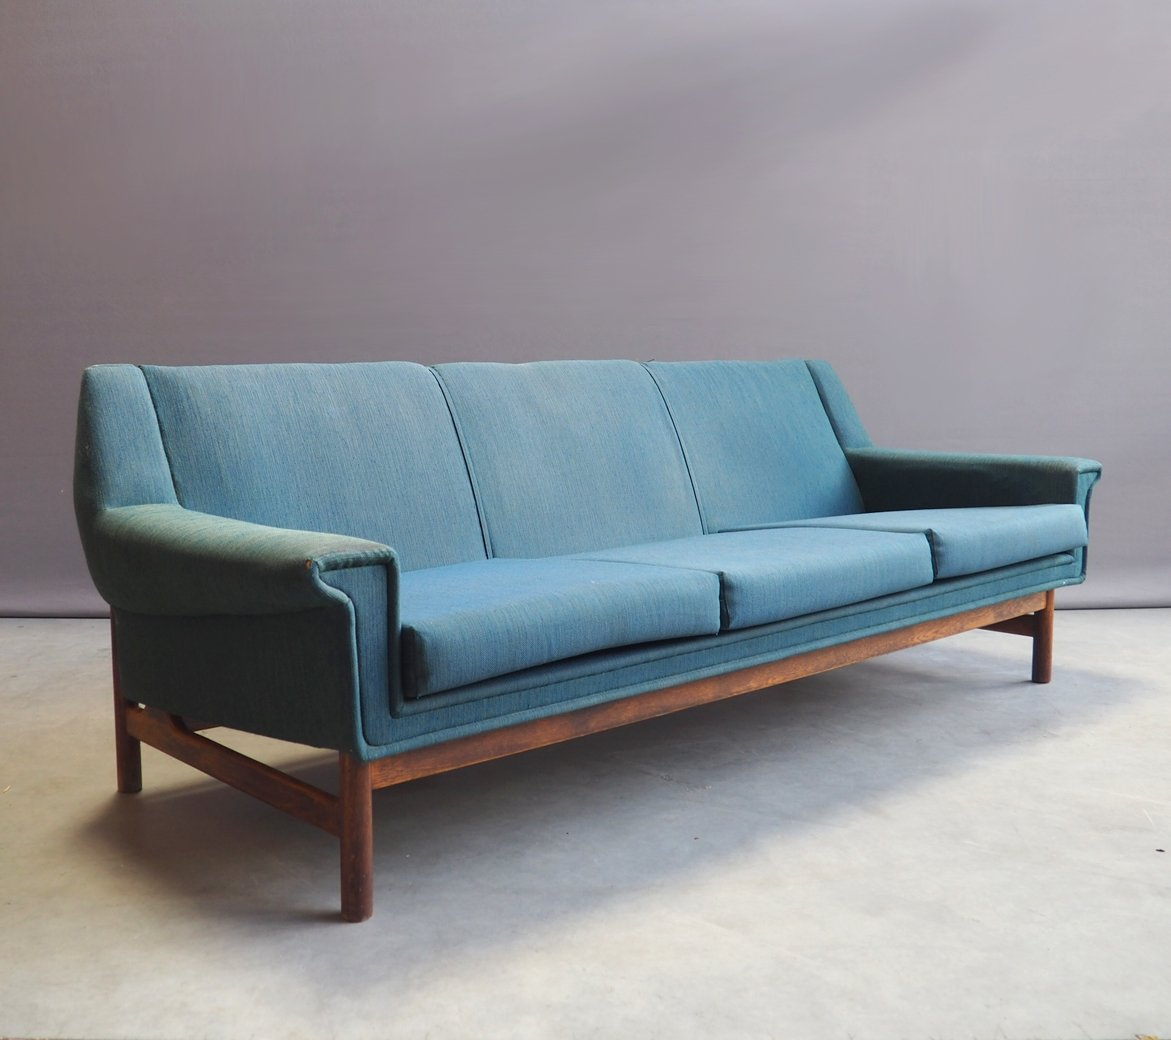 Danish Design Rosewood 3 Seater Sofa By Brdr Andersen